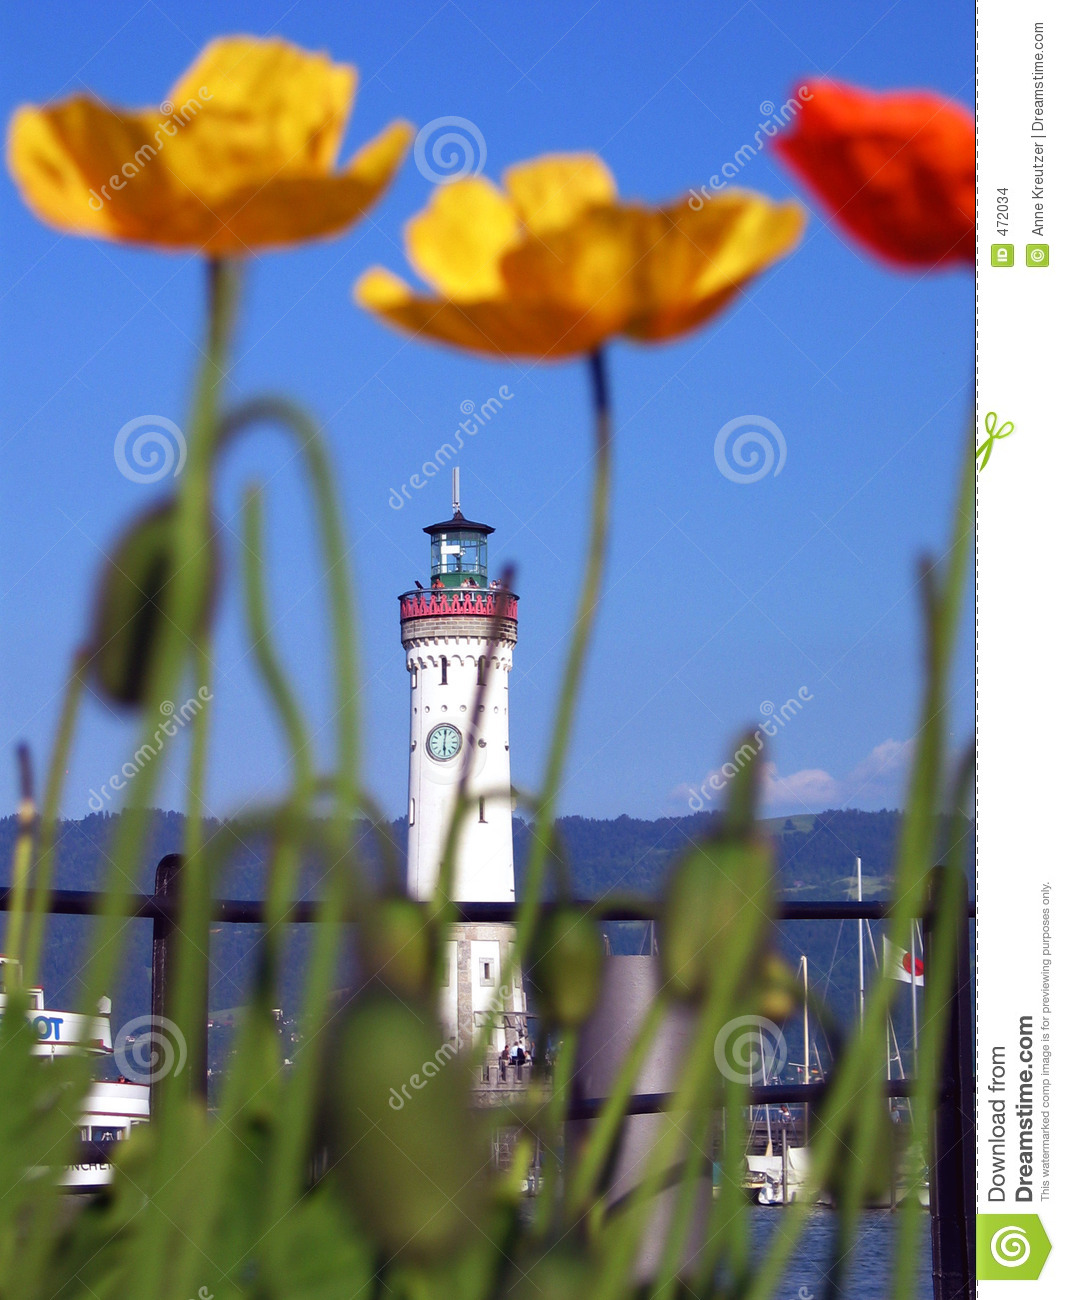 Download Blure Poppies With The Lighthouse Stock Photo - Image of lake, blue: 472034